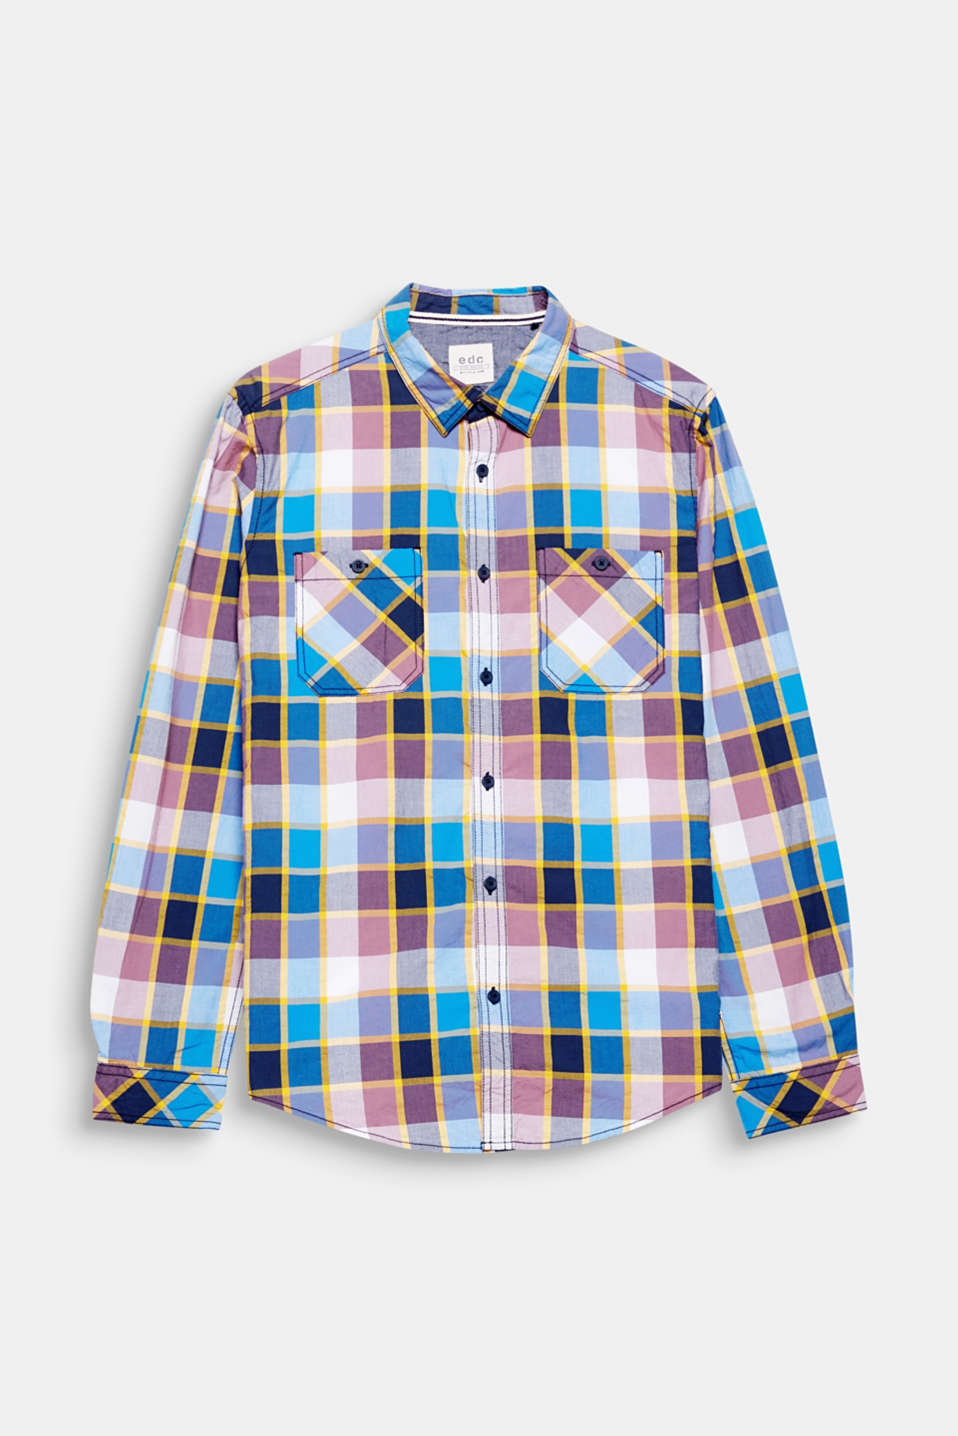 The distinctive, colourful check pattern gives this shirt an equally distinctive look.